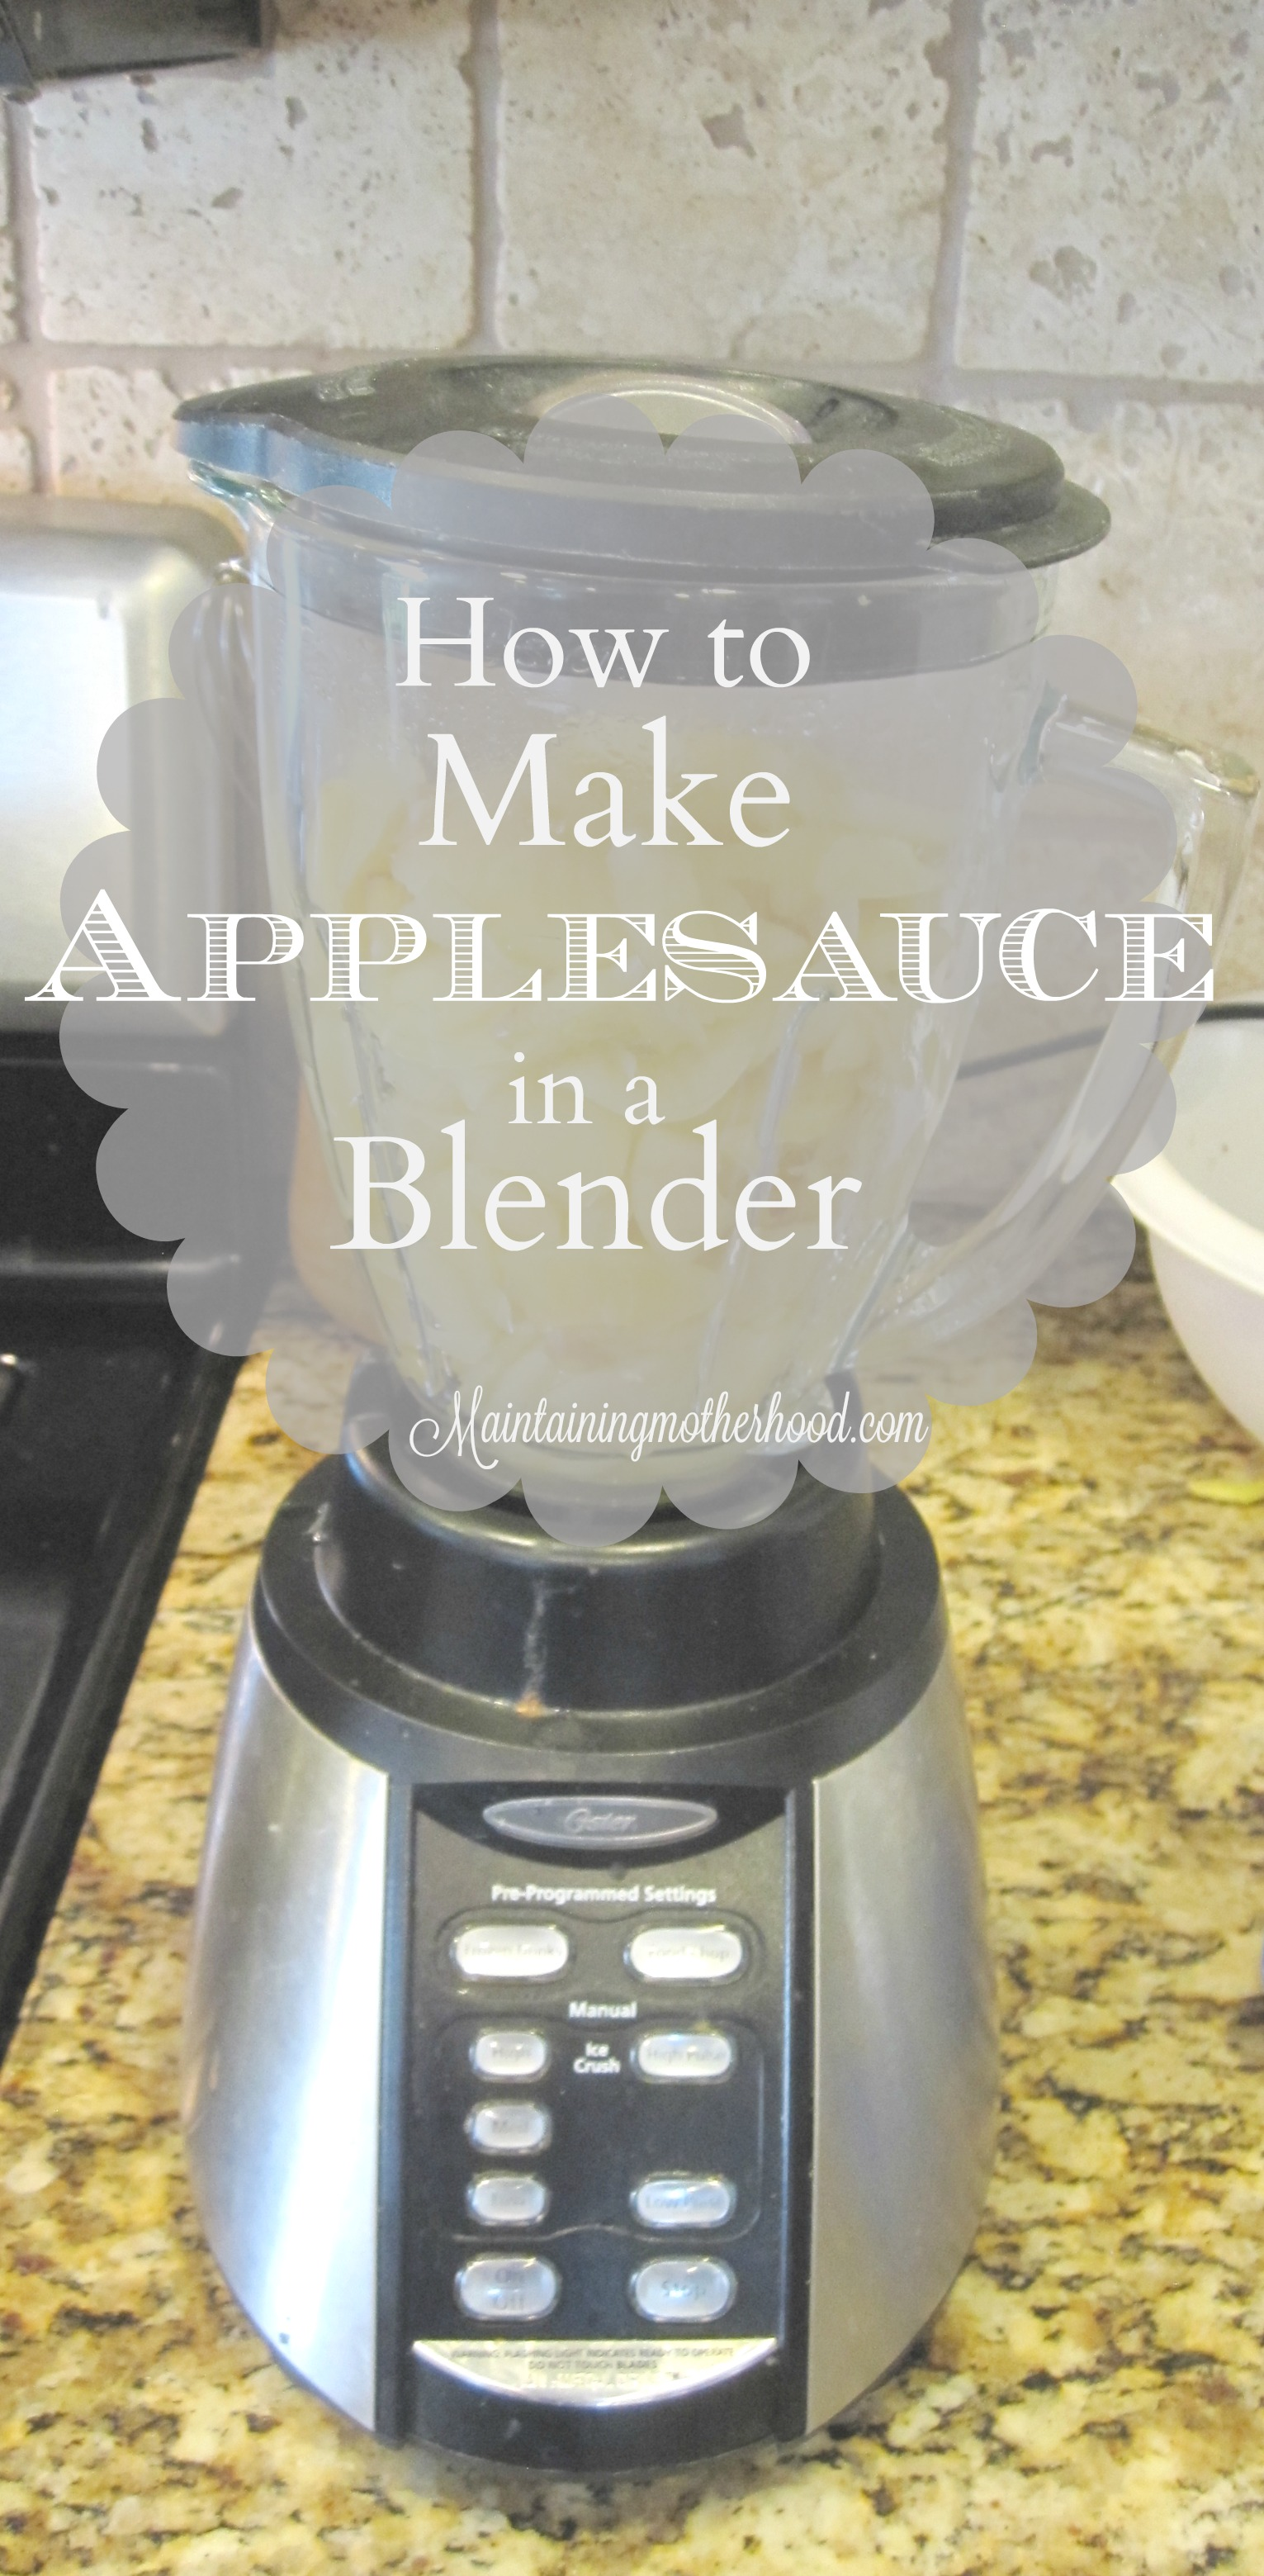 I used to think the only way to make applesauce was with a food strainer. I recently tried making applesauce in a blender, and really liked it!